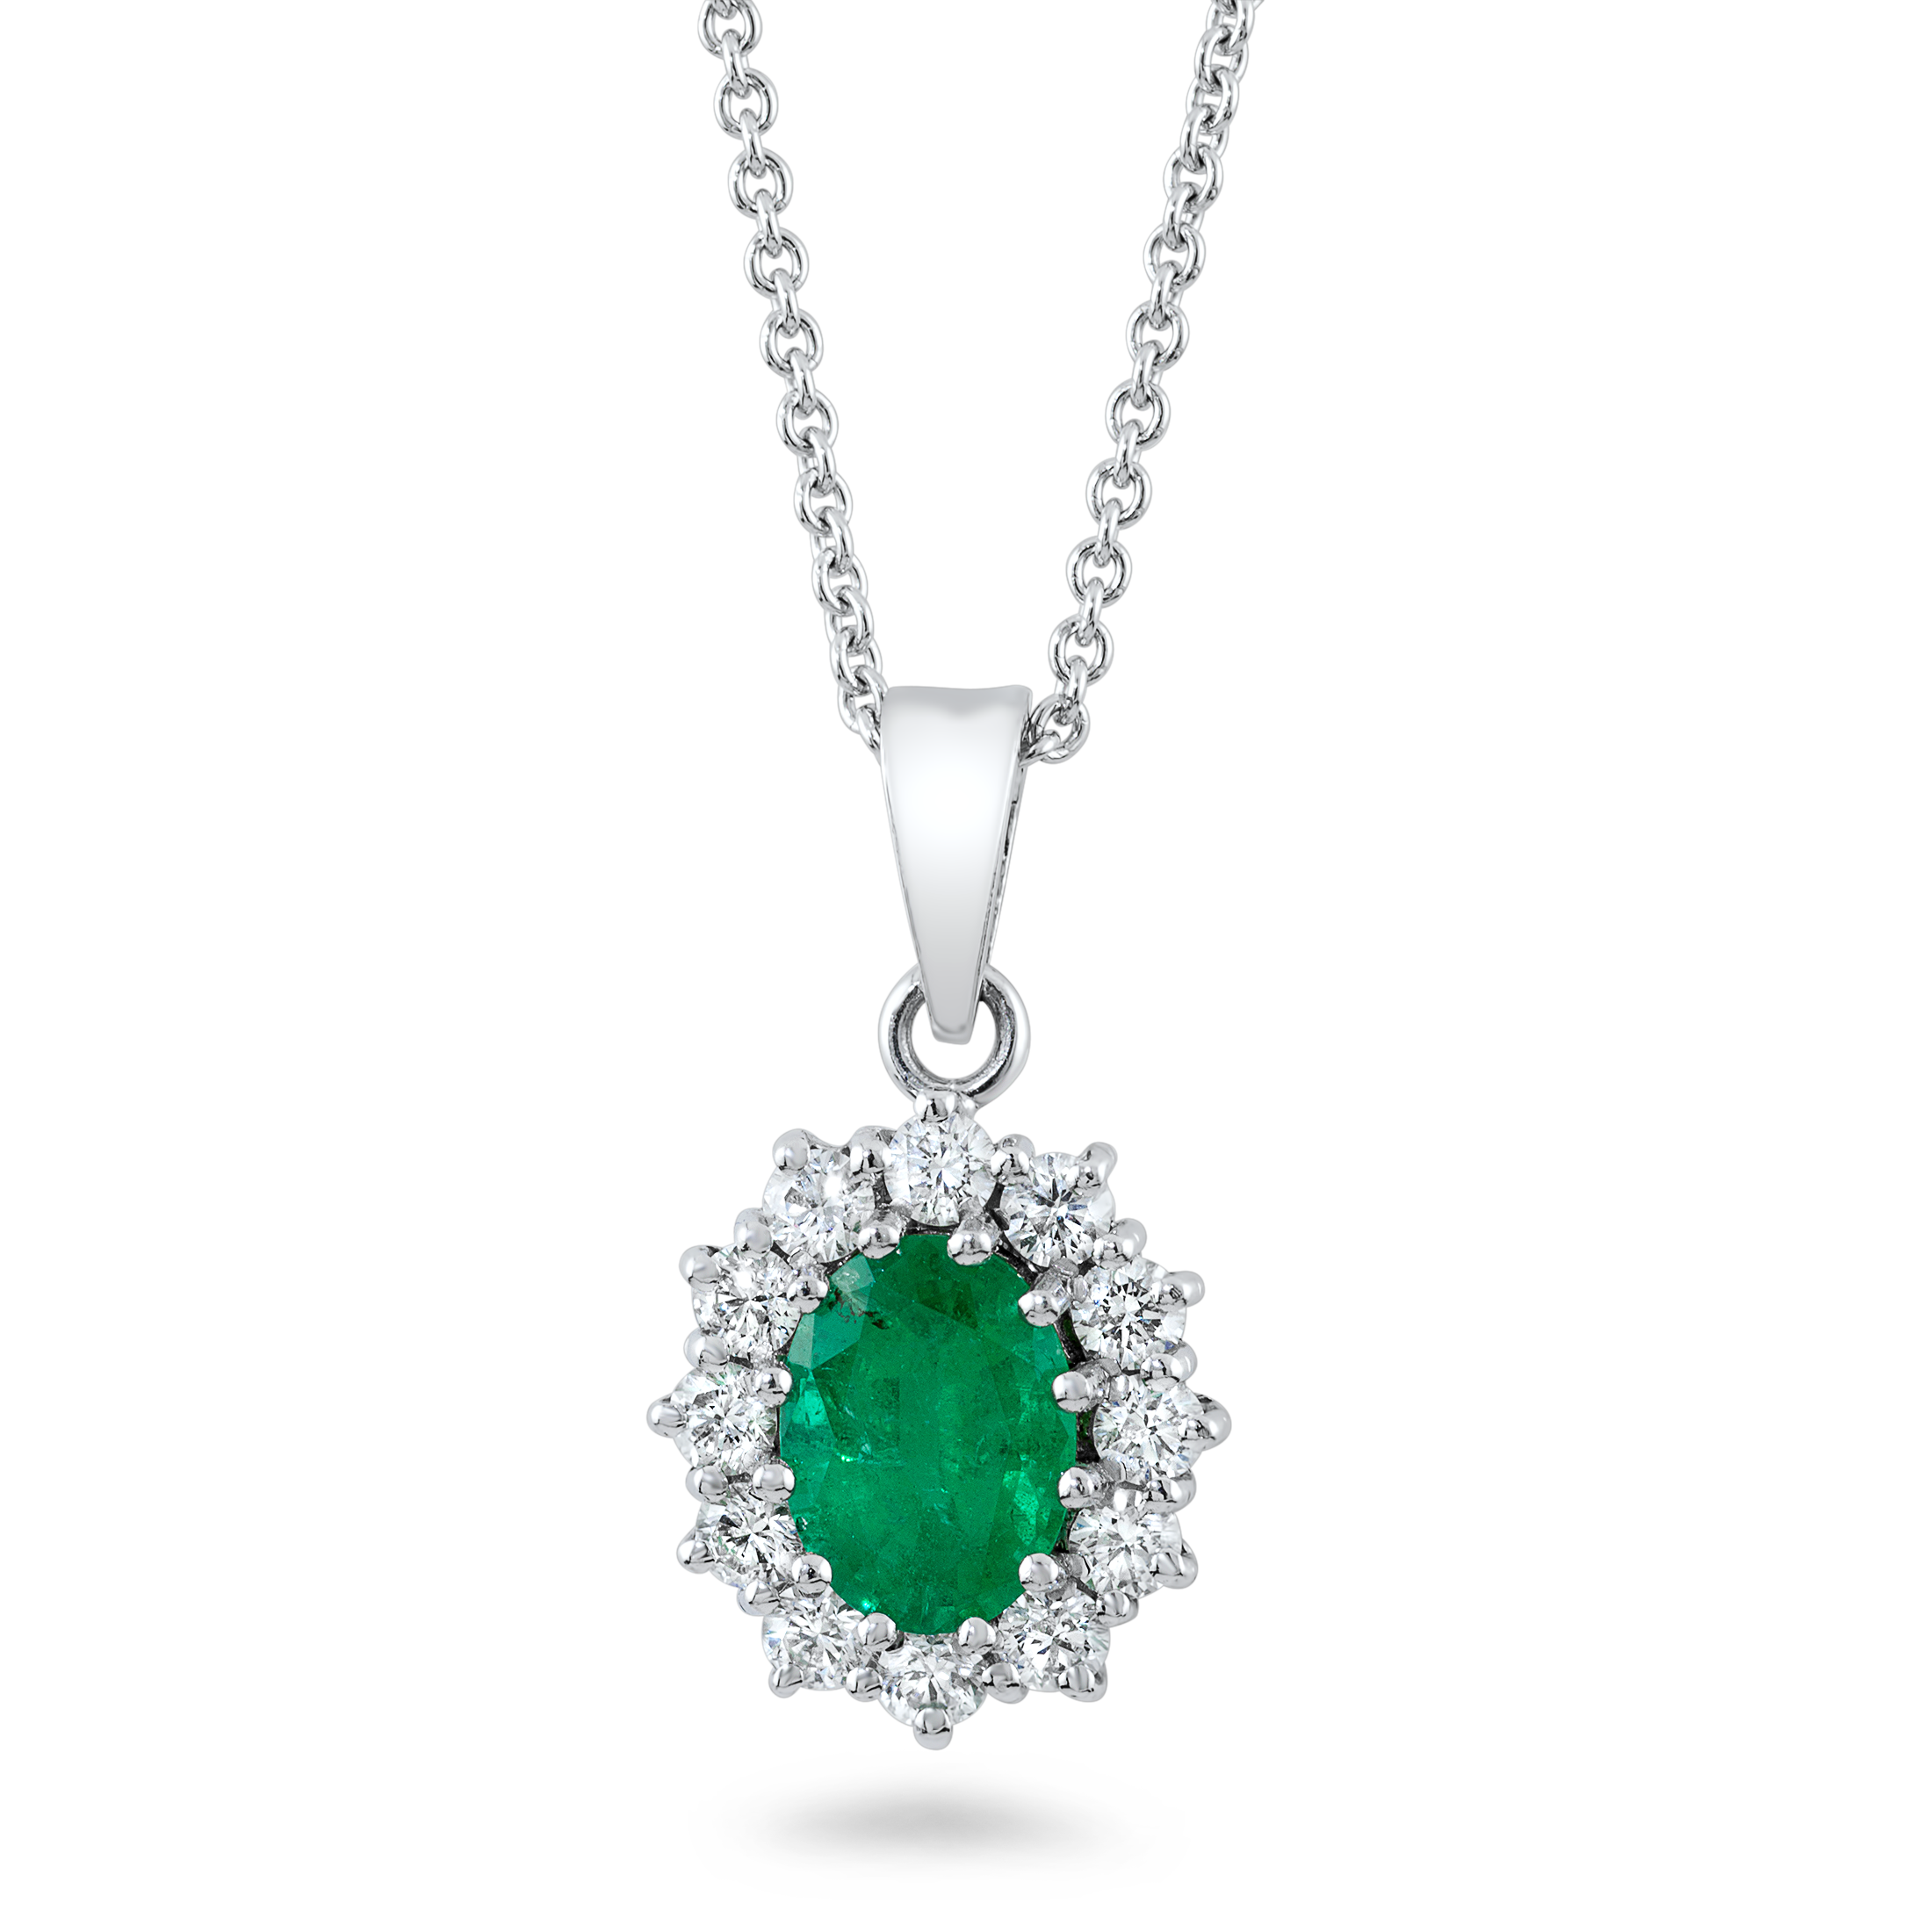 Necklace png. Jewellery transparent pictures free